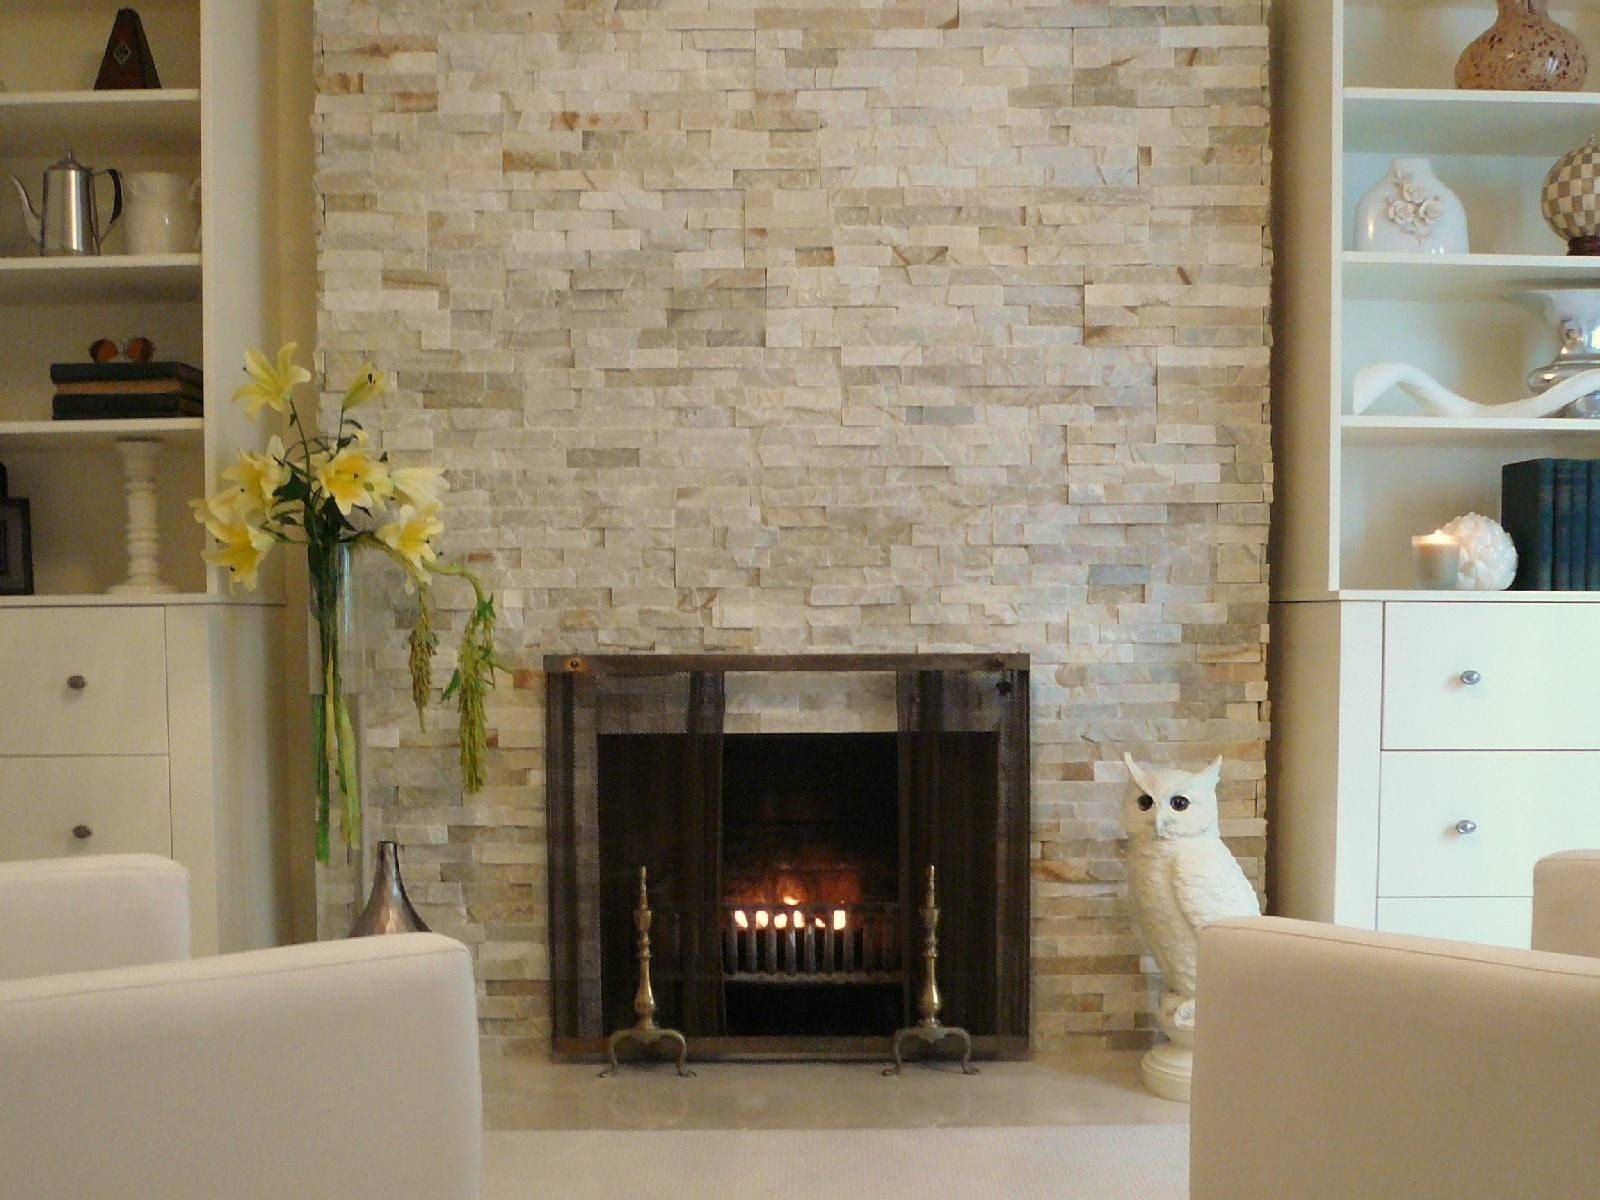 Stone fireplace surround fireplace surround ideas - Stone fireplace surround ideas ...